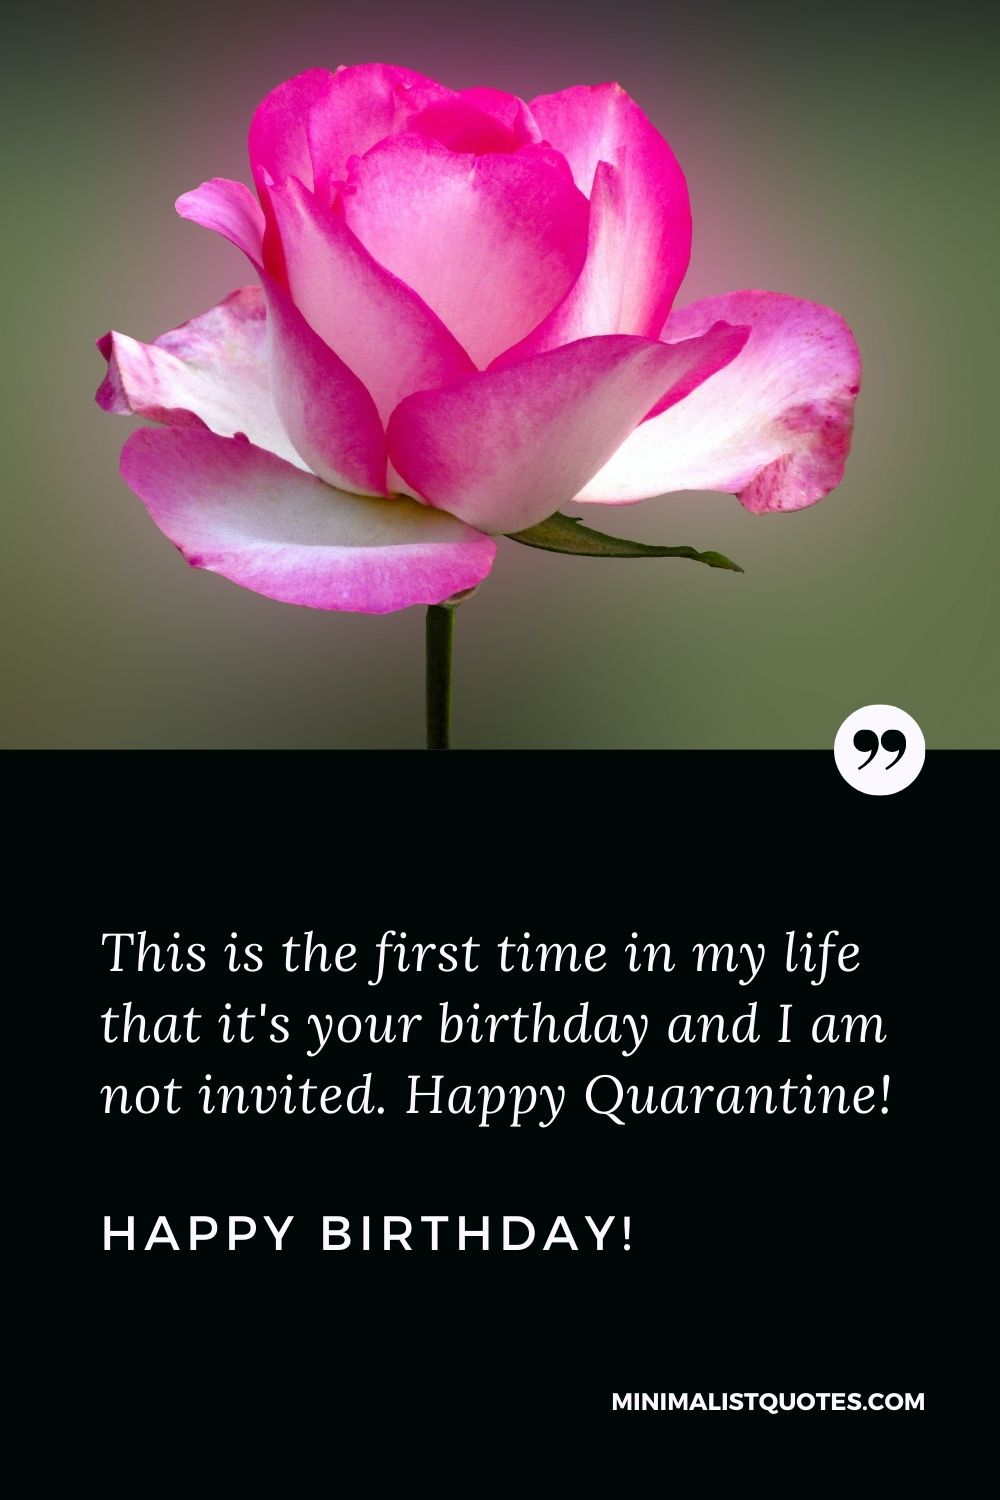 Quarantine Birthday Quote, Wish & Message With Image: This is the first time in my life that it's your birthday and I am not invited. Happy Quarantine Birthday!